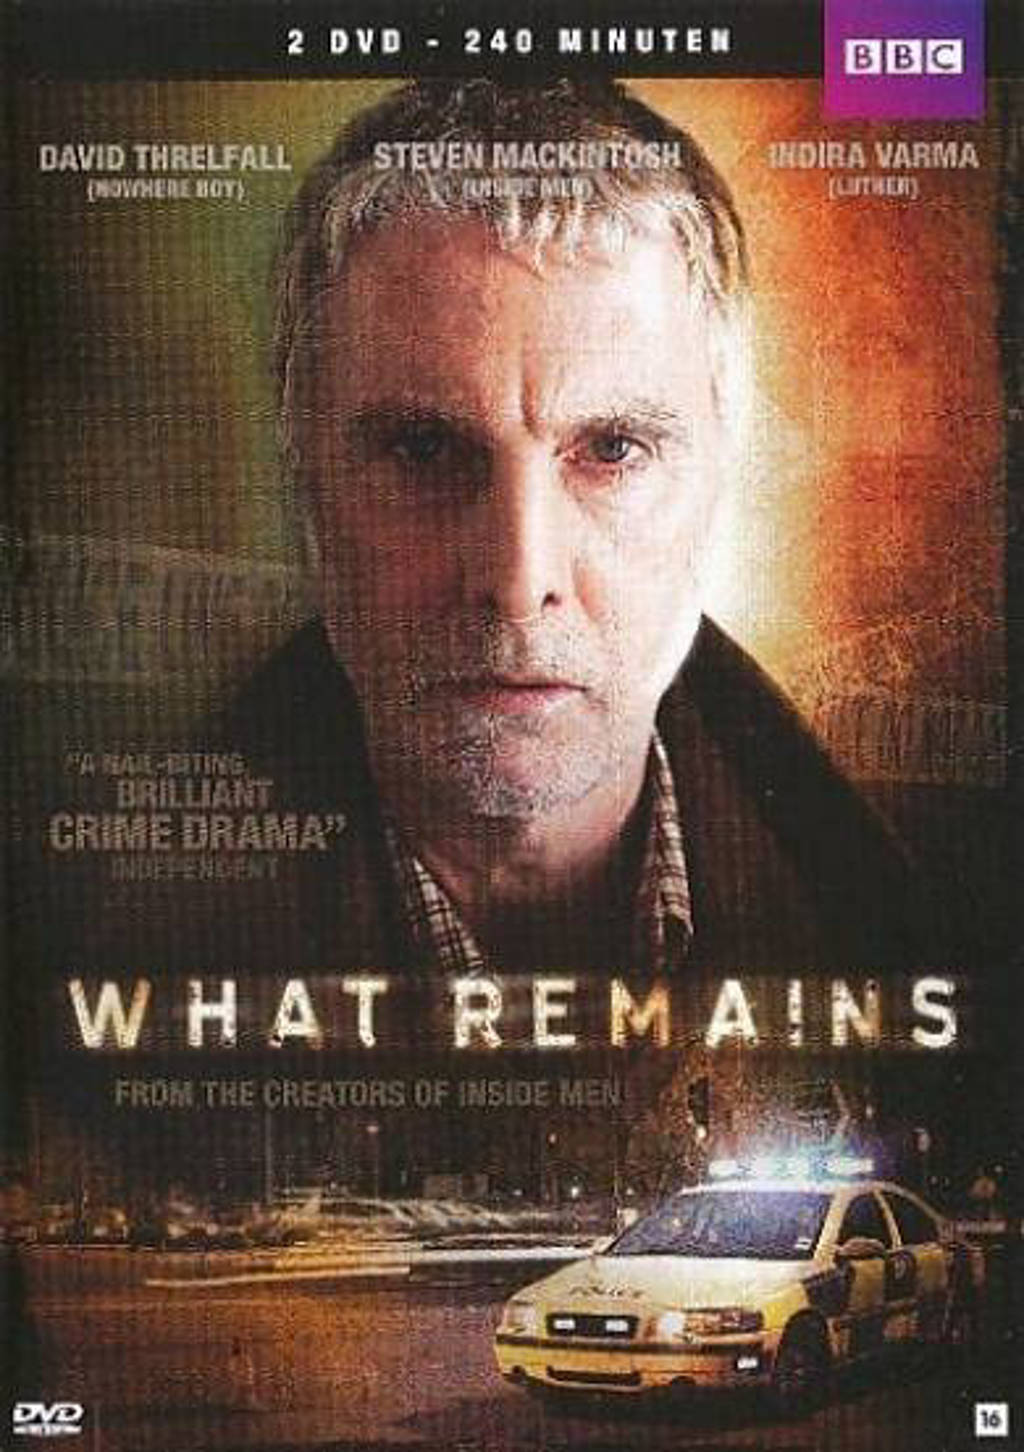 What remains (DVD)